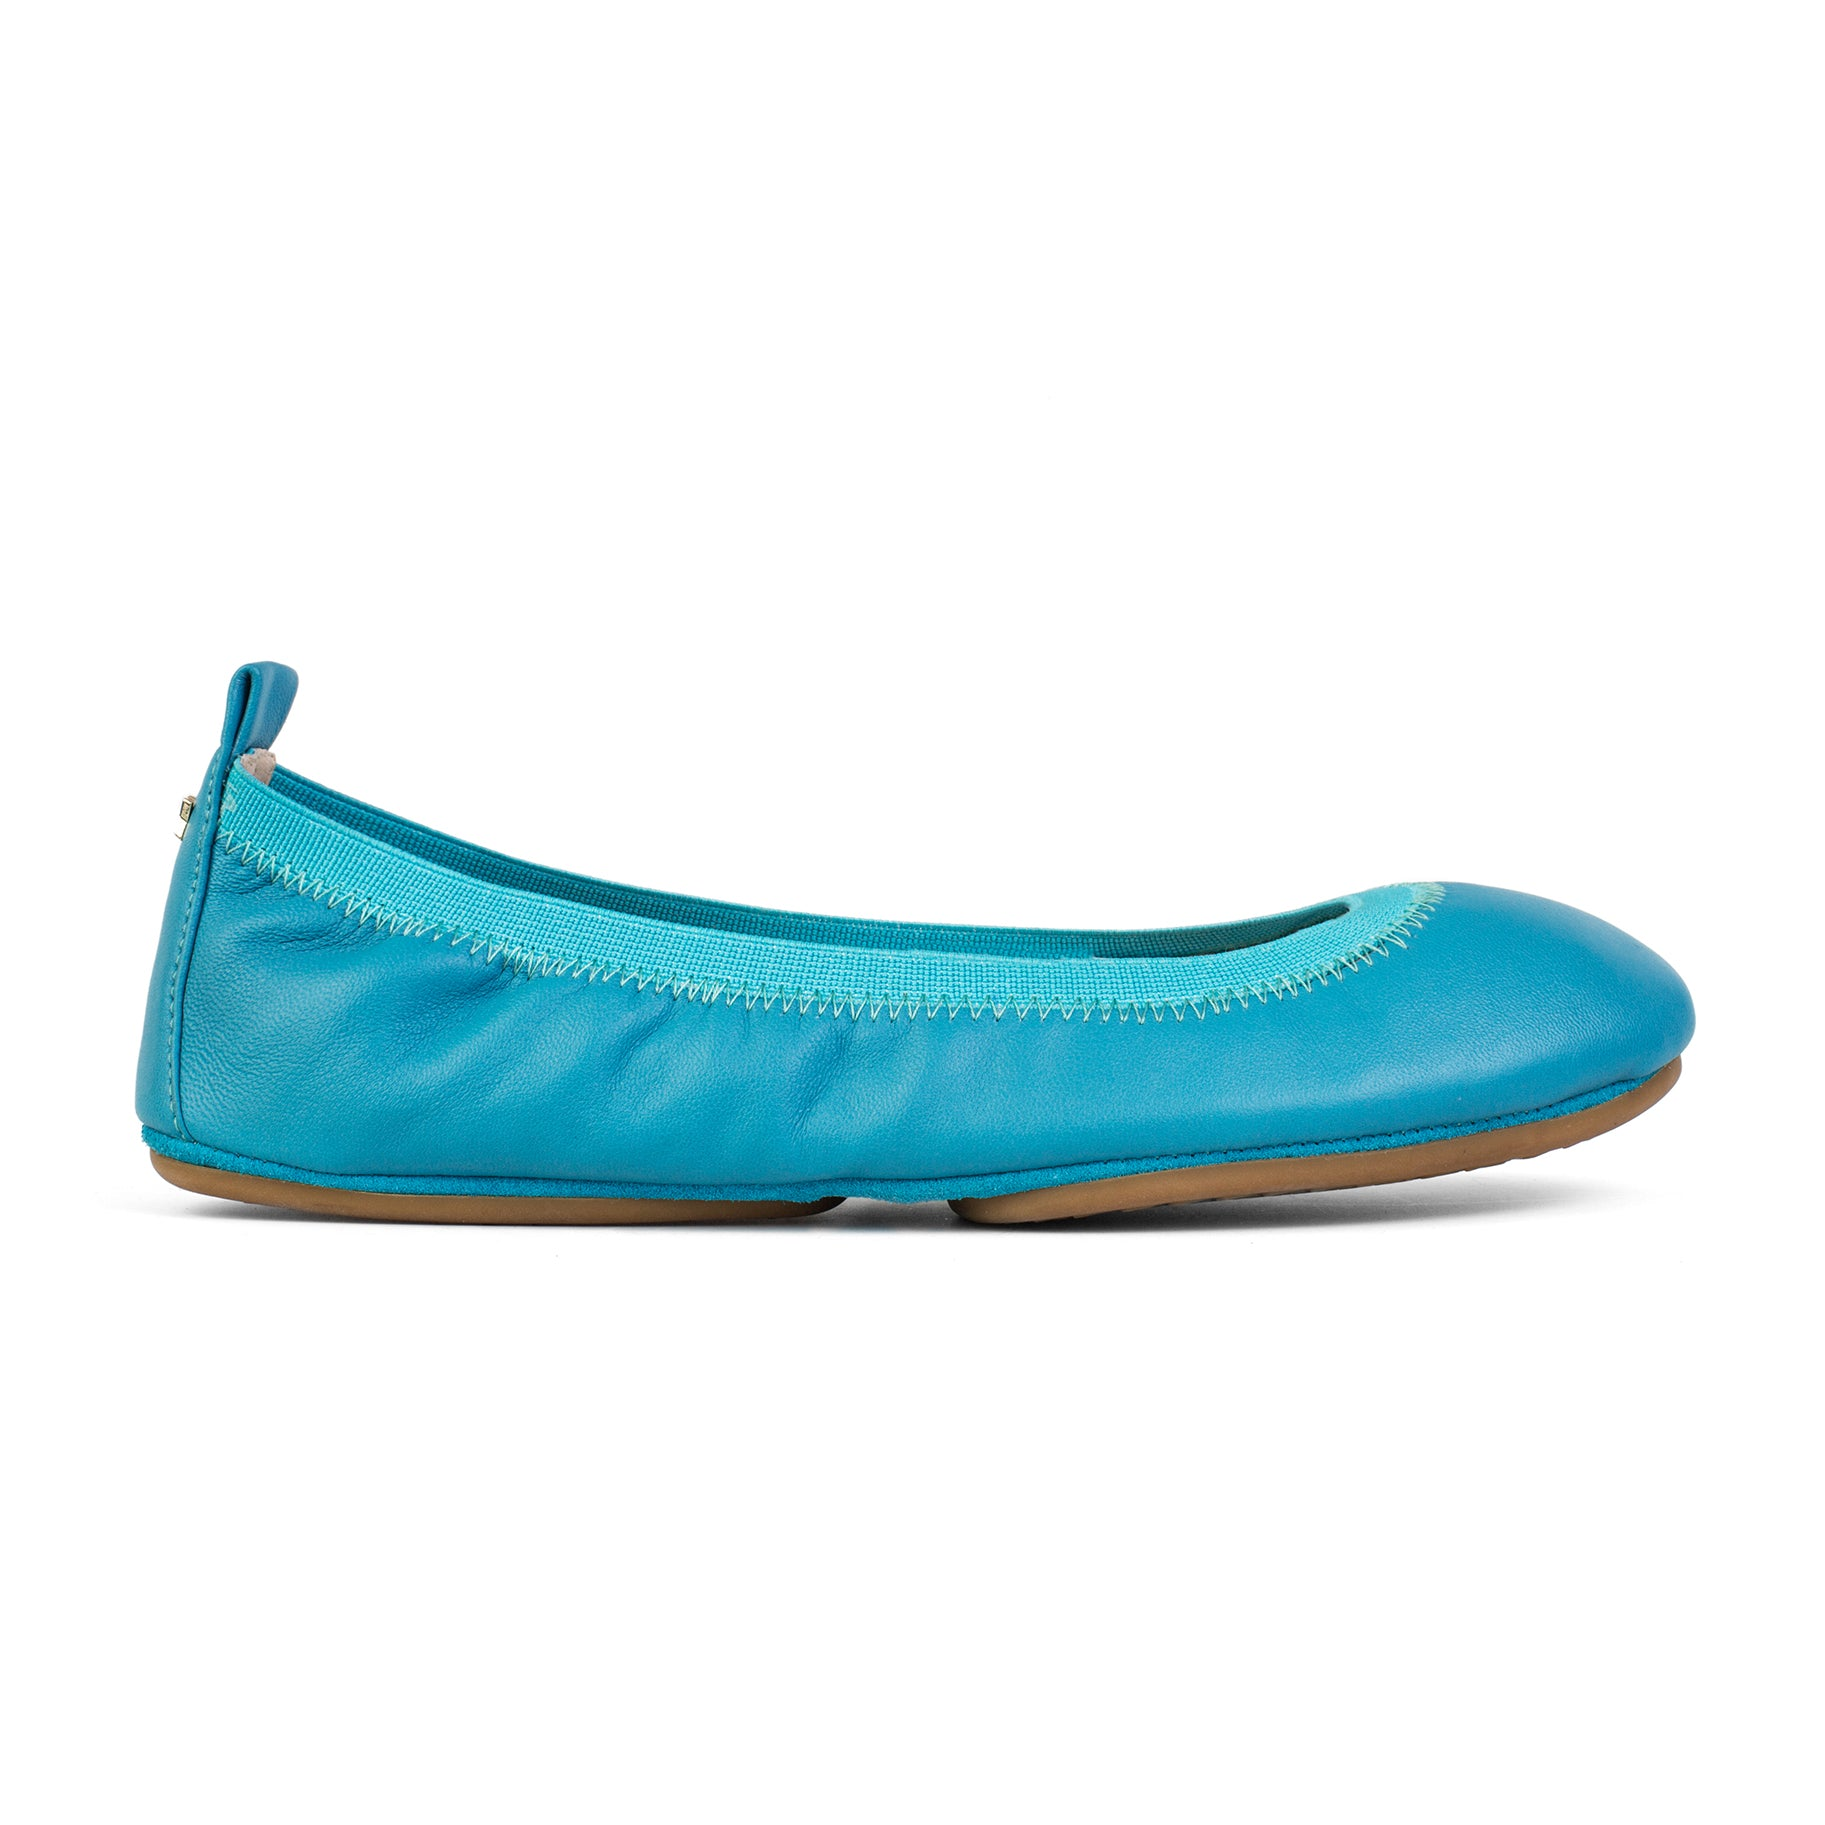 Samara Lagoon Leather Ballet Flat